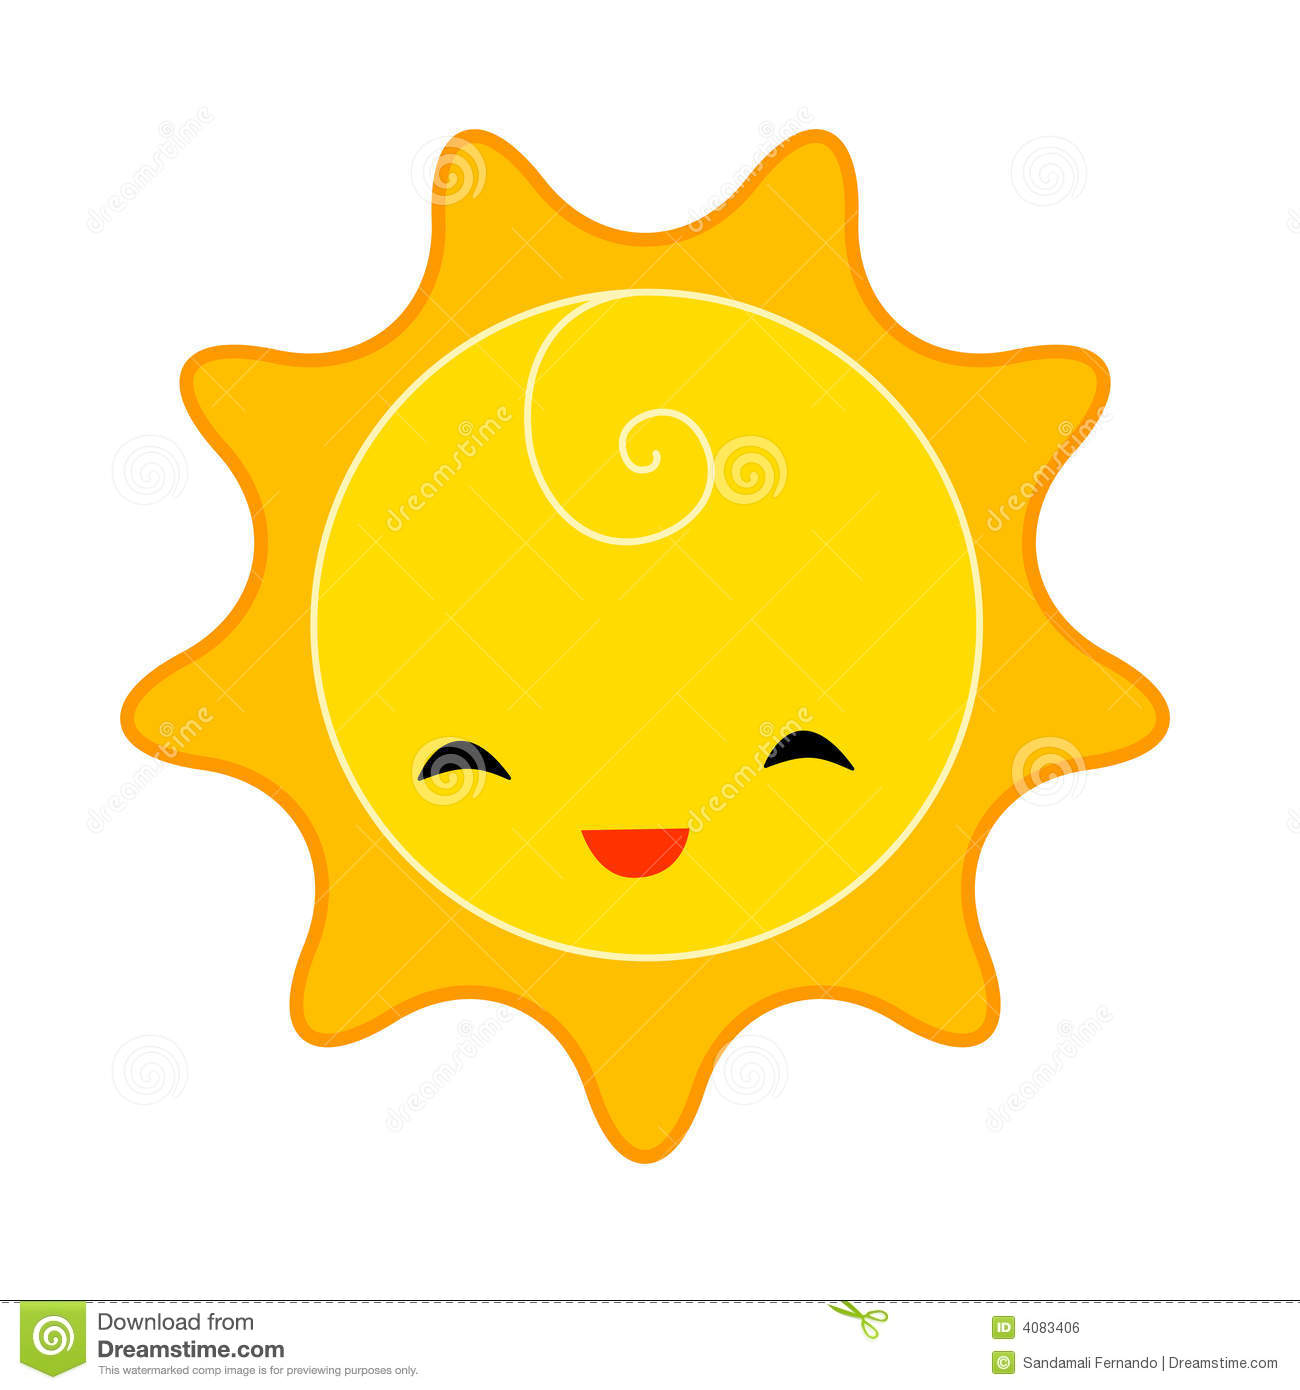 smiling sun clipart royalty free-smiling sun clipart royalty free-4